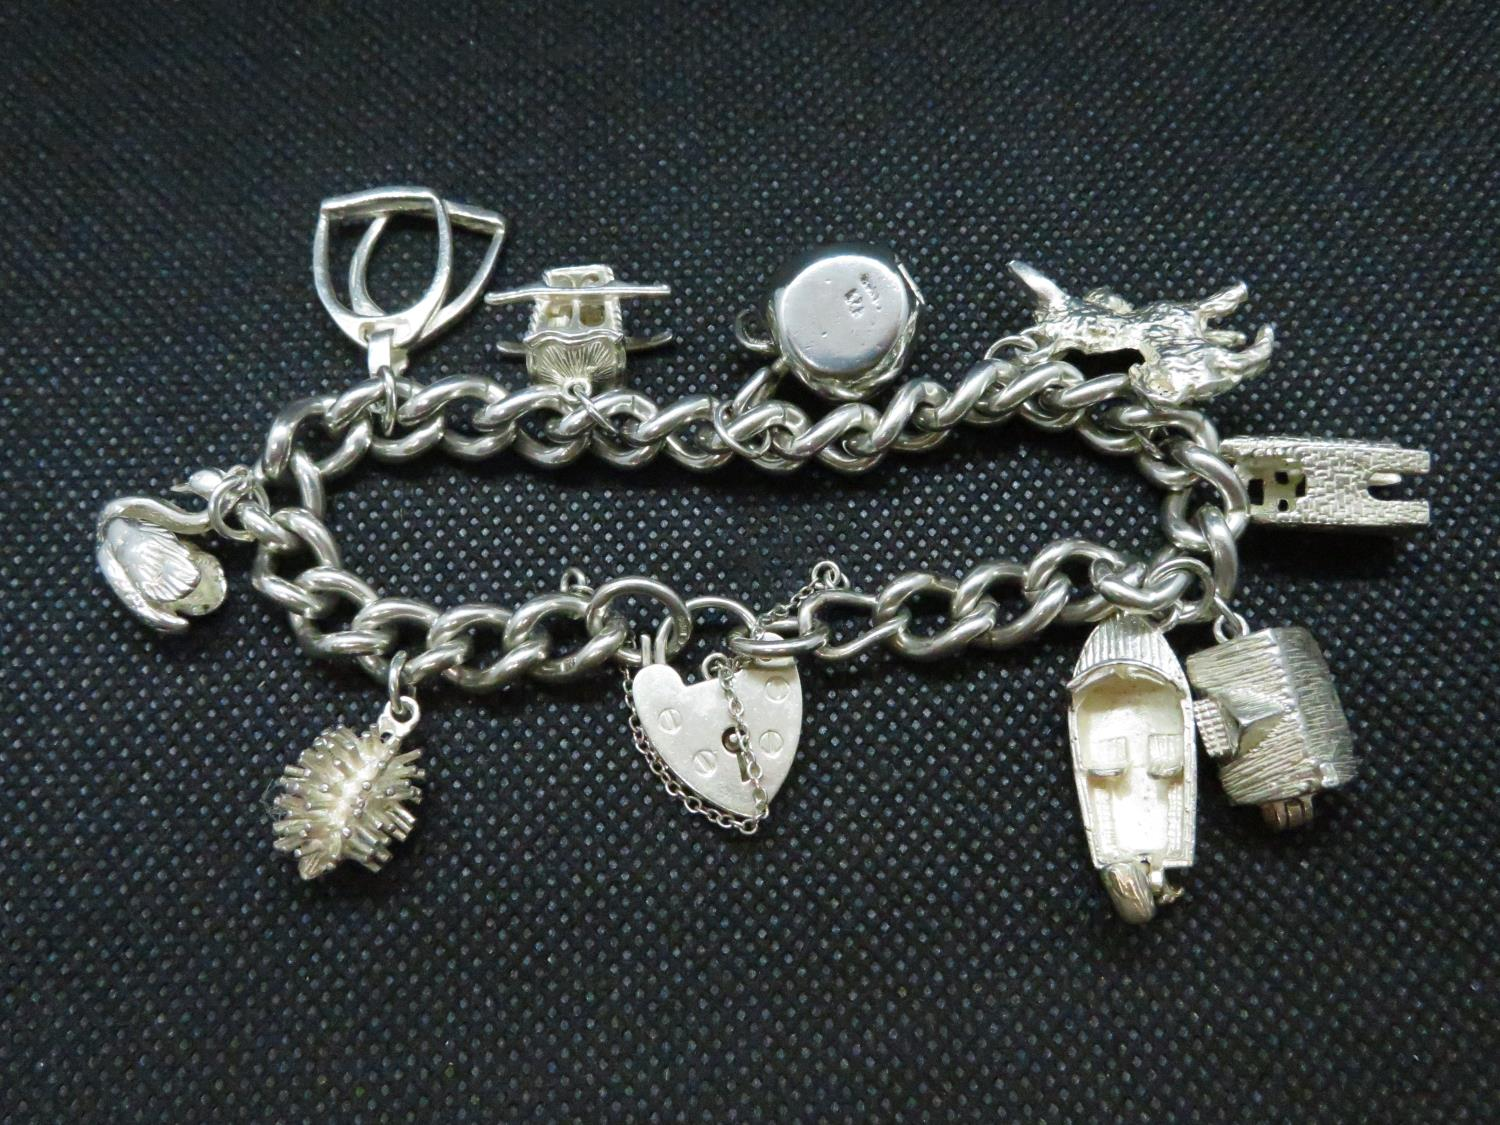 Lot 34 - Vintage silver charm bracelet with 9x nice charms HM London 1978 65 grams